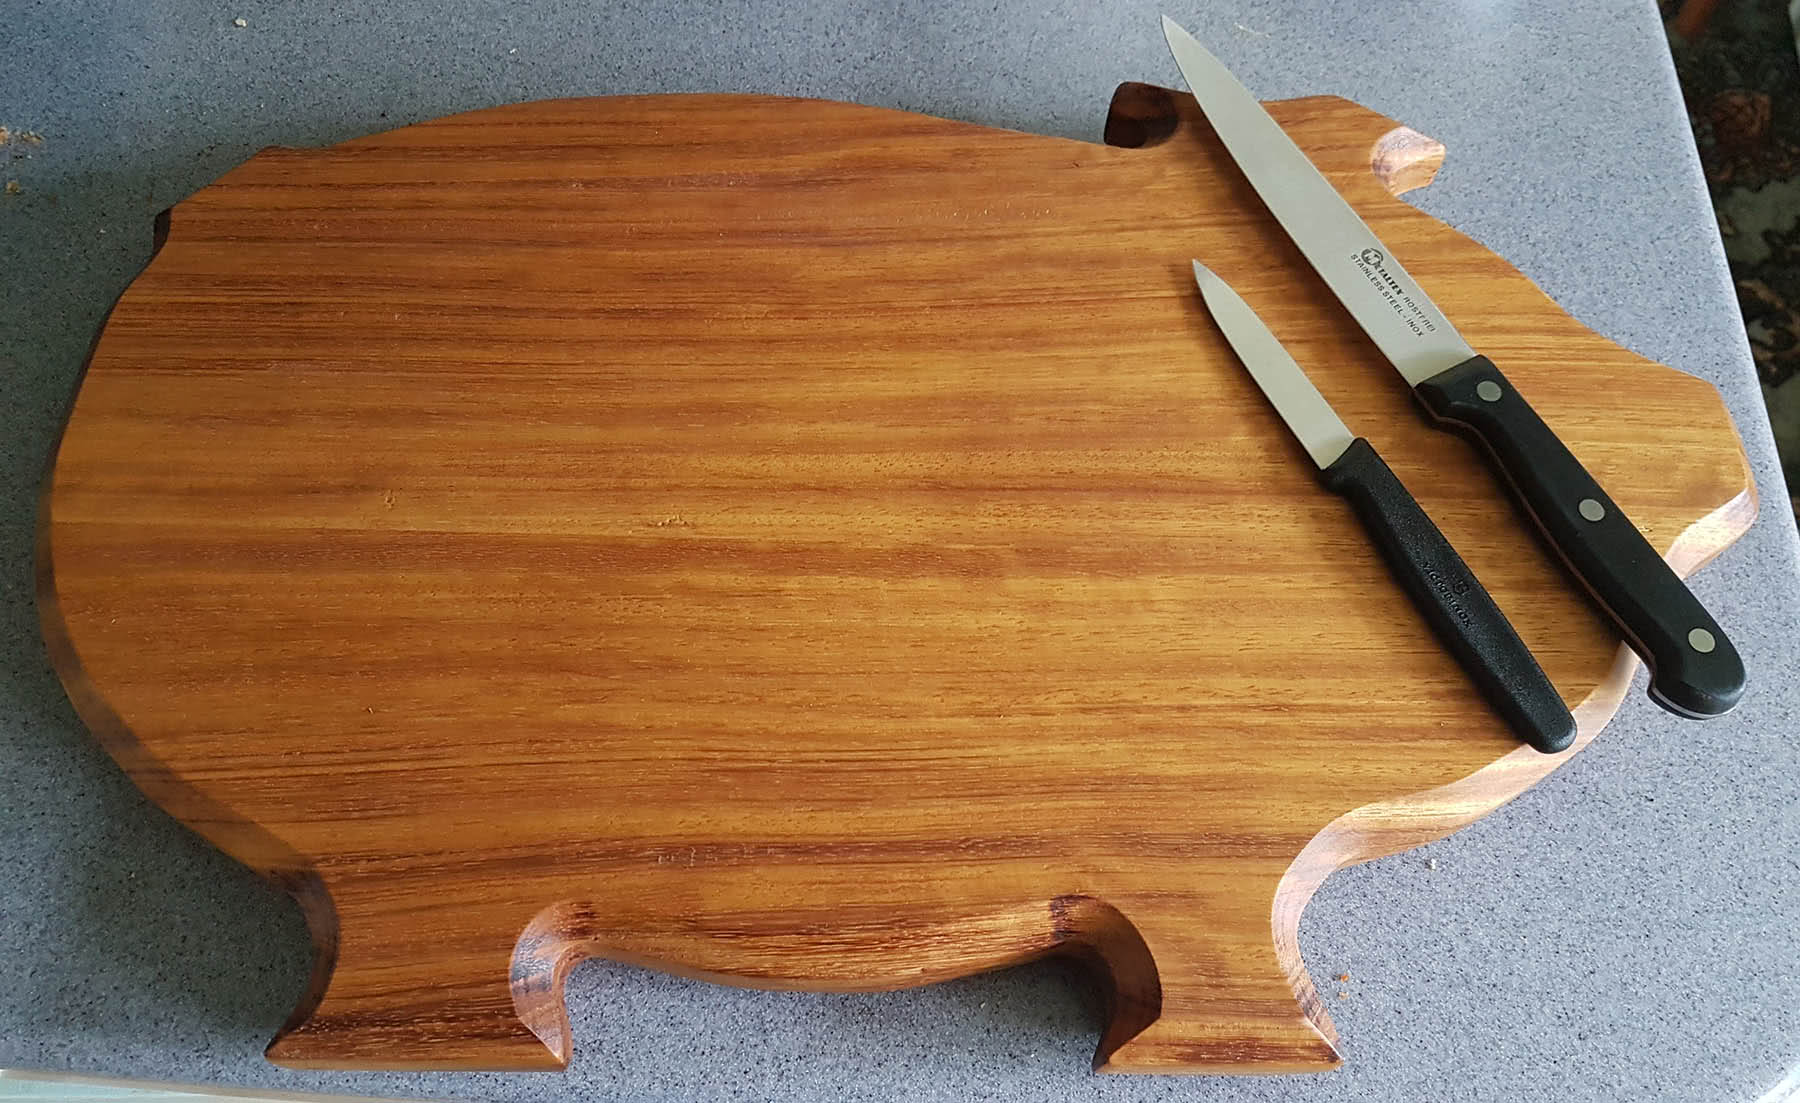 Pig shaped chopping board in Iroko wood with top knives near snout